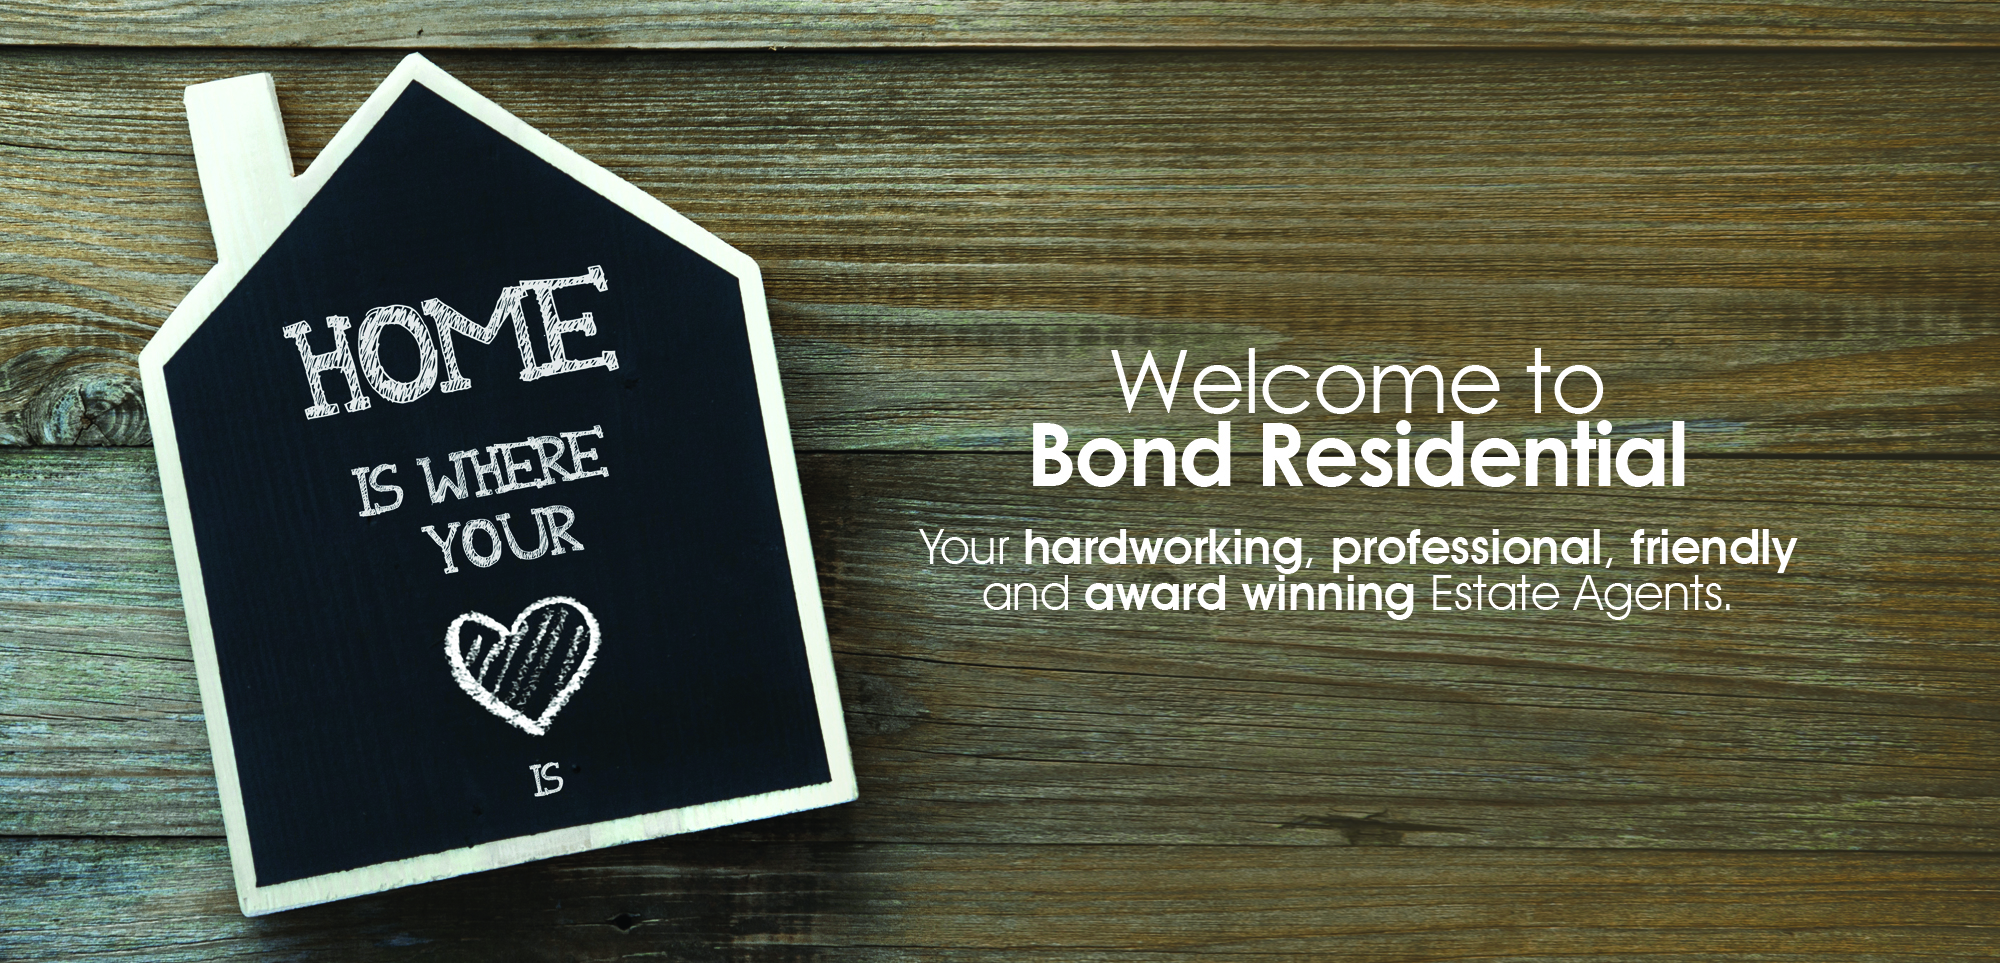 WELCOME TO BOND RESIDENTIAL